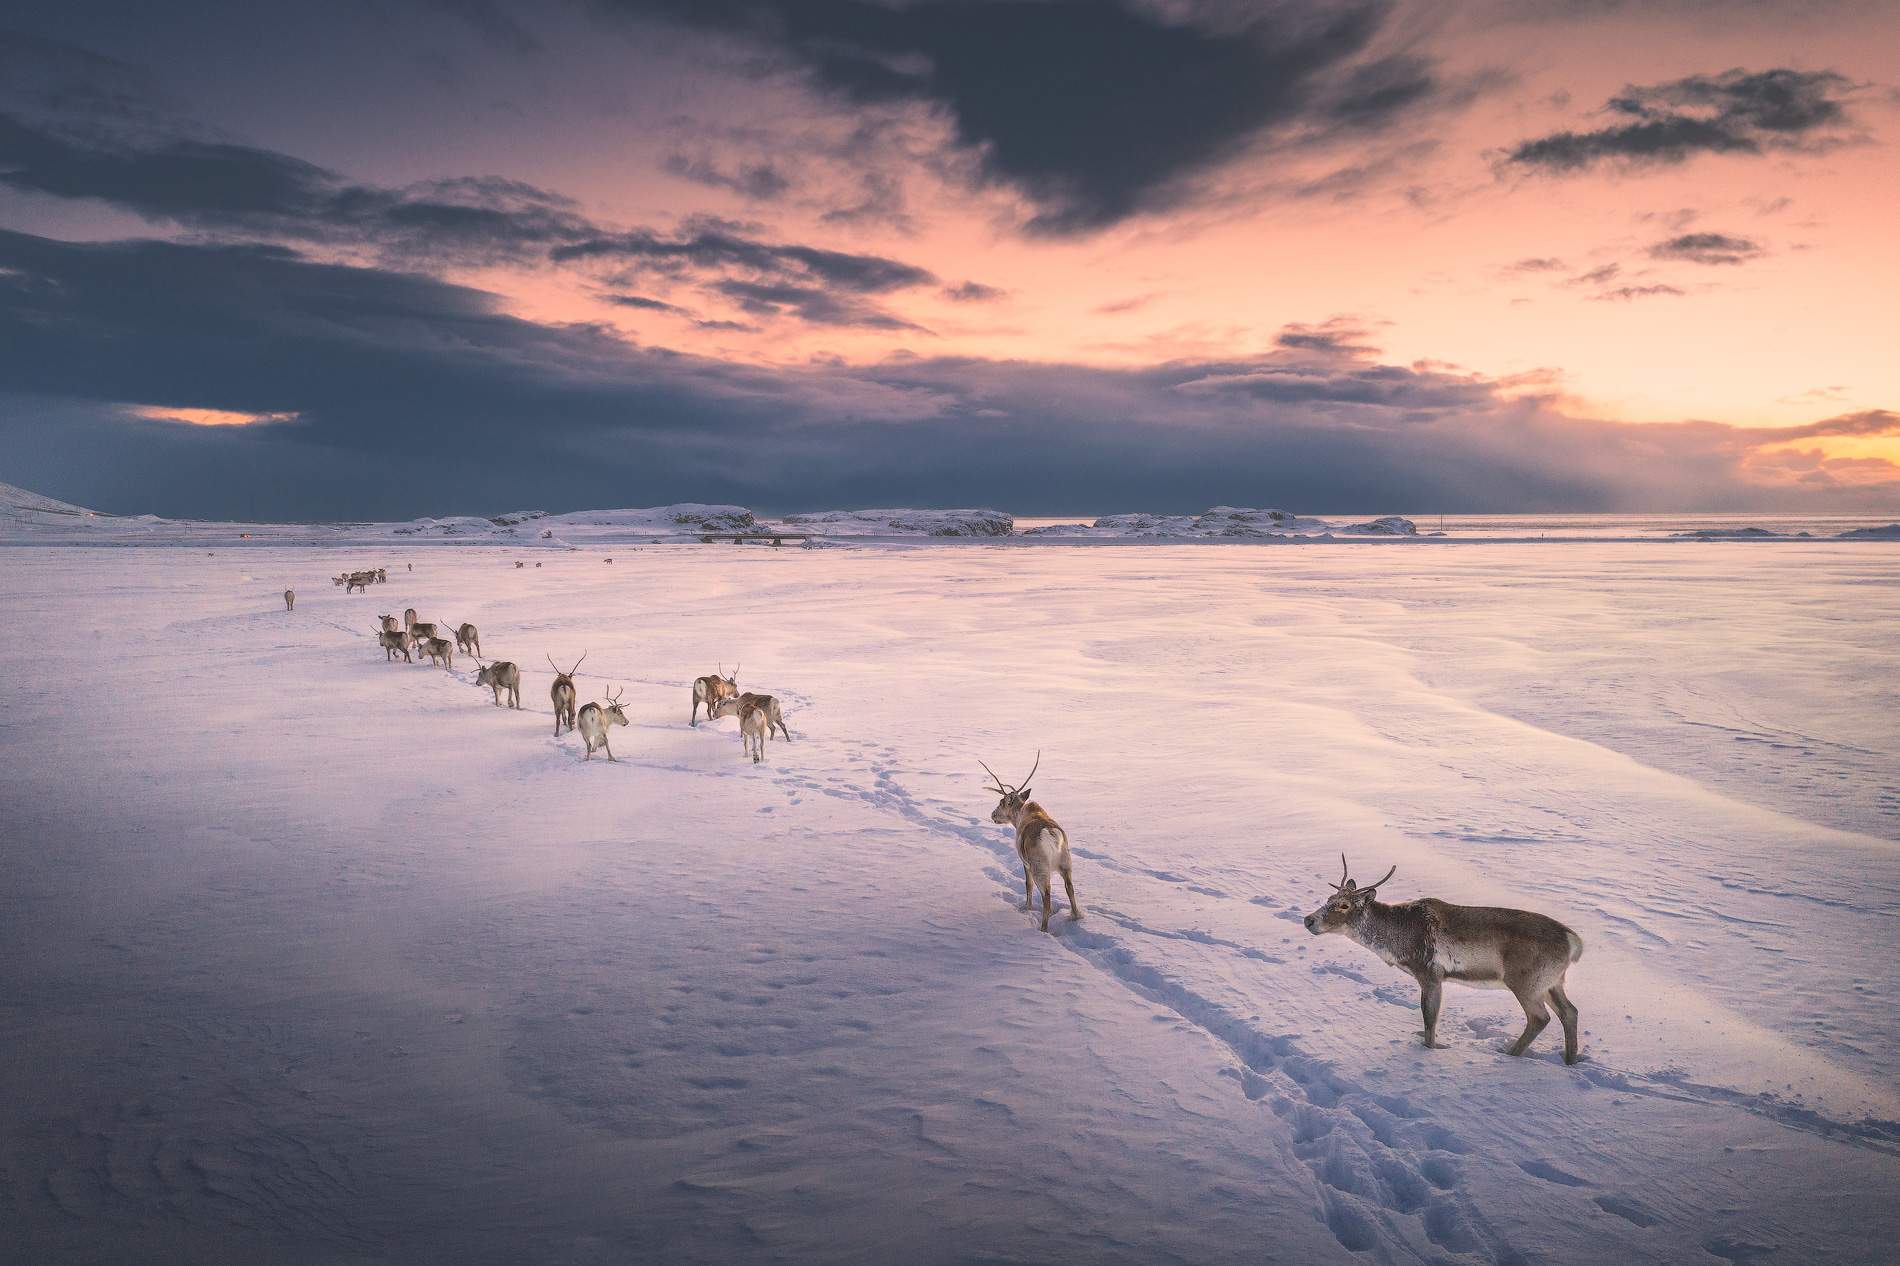 Wild reindeer roam free in the Eastfjords since Icelanders never really took to reindeer husbandry.